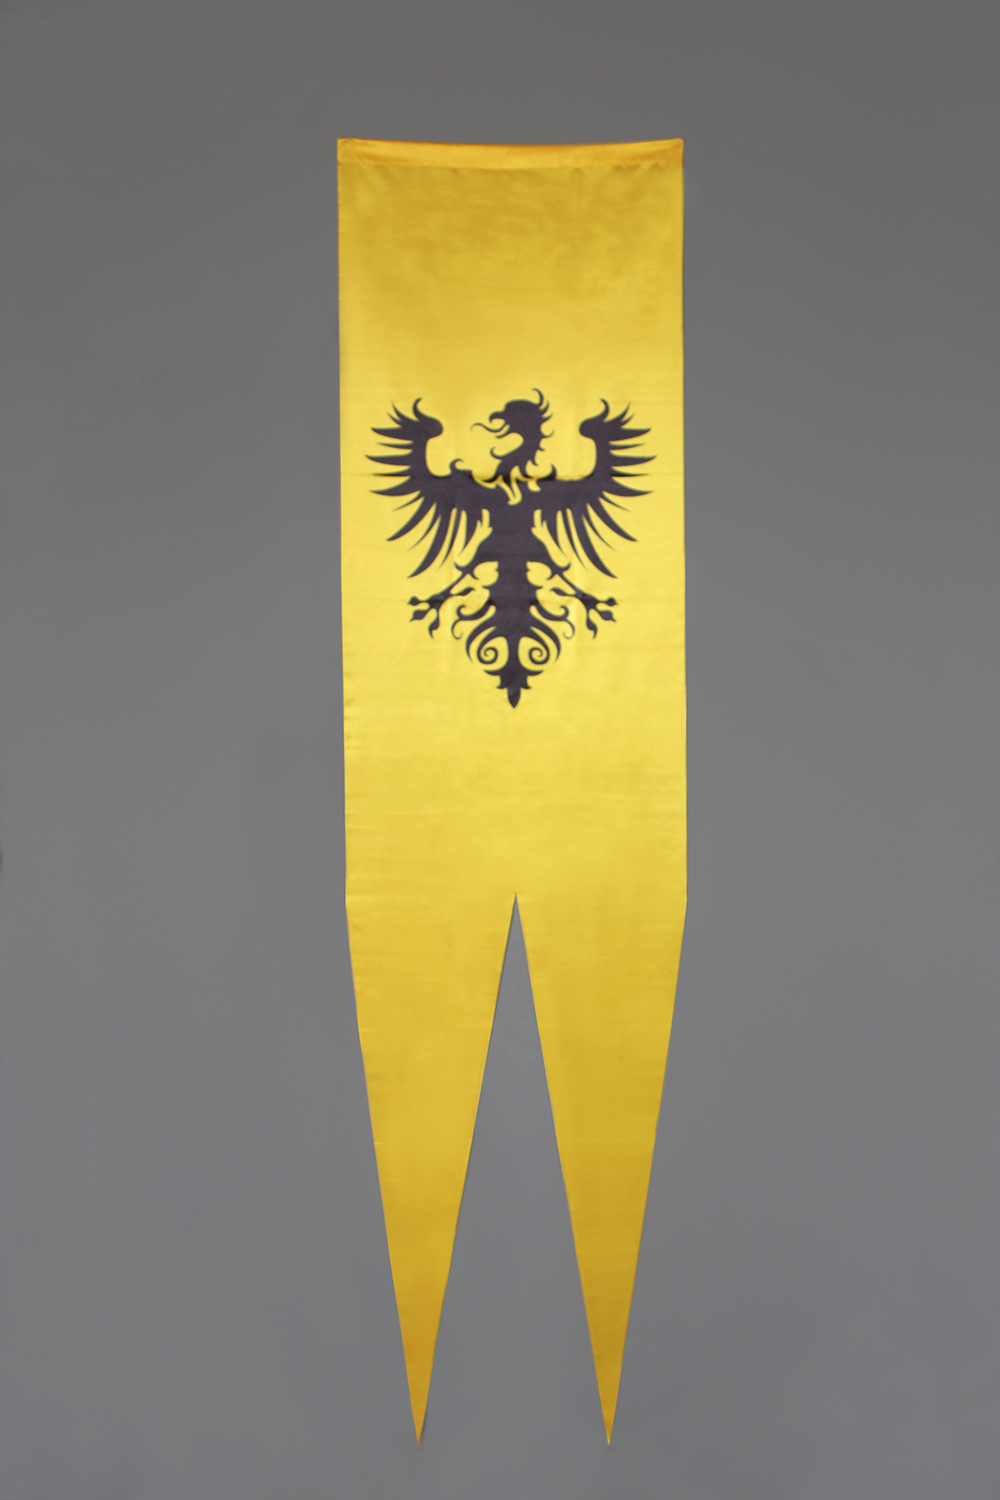 medieval banners flags 5002